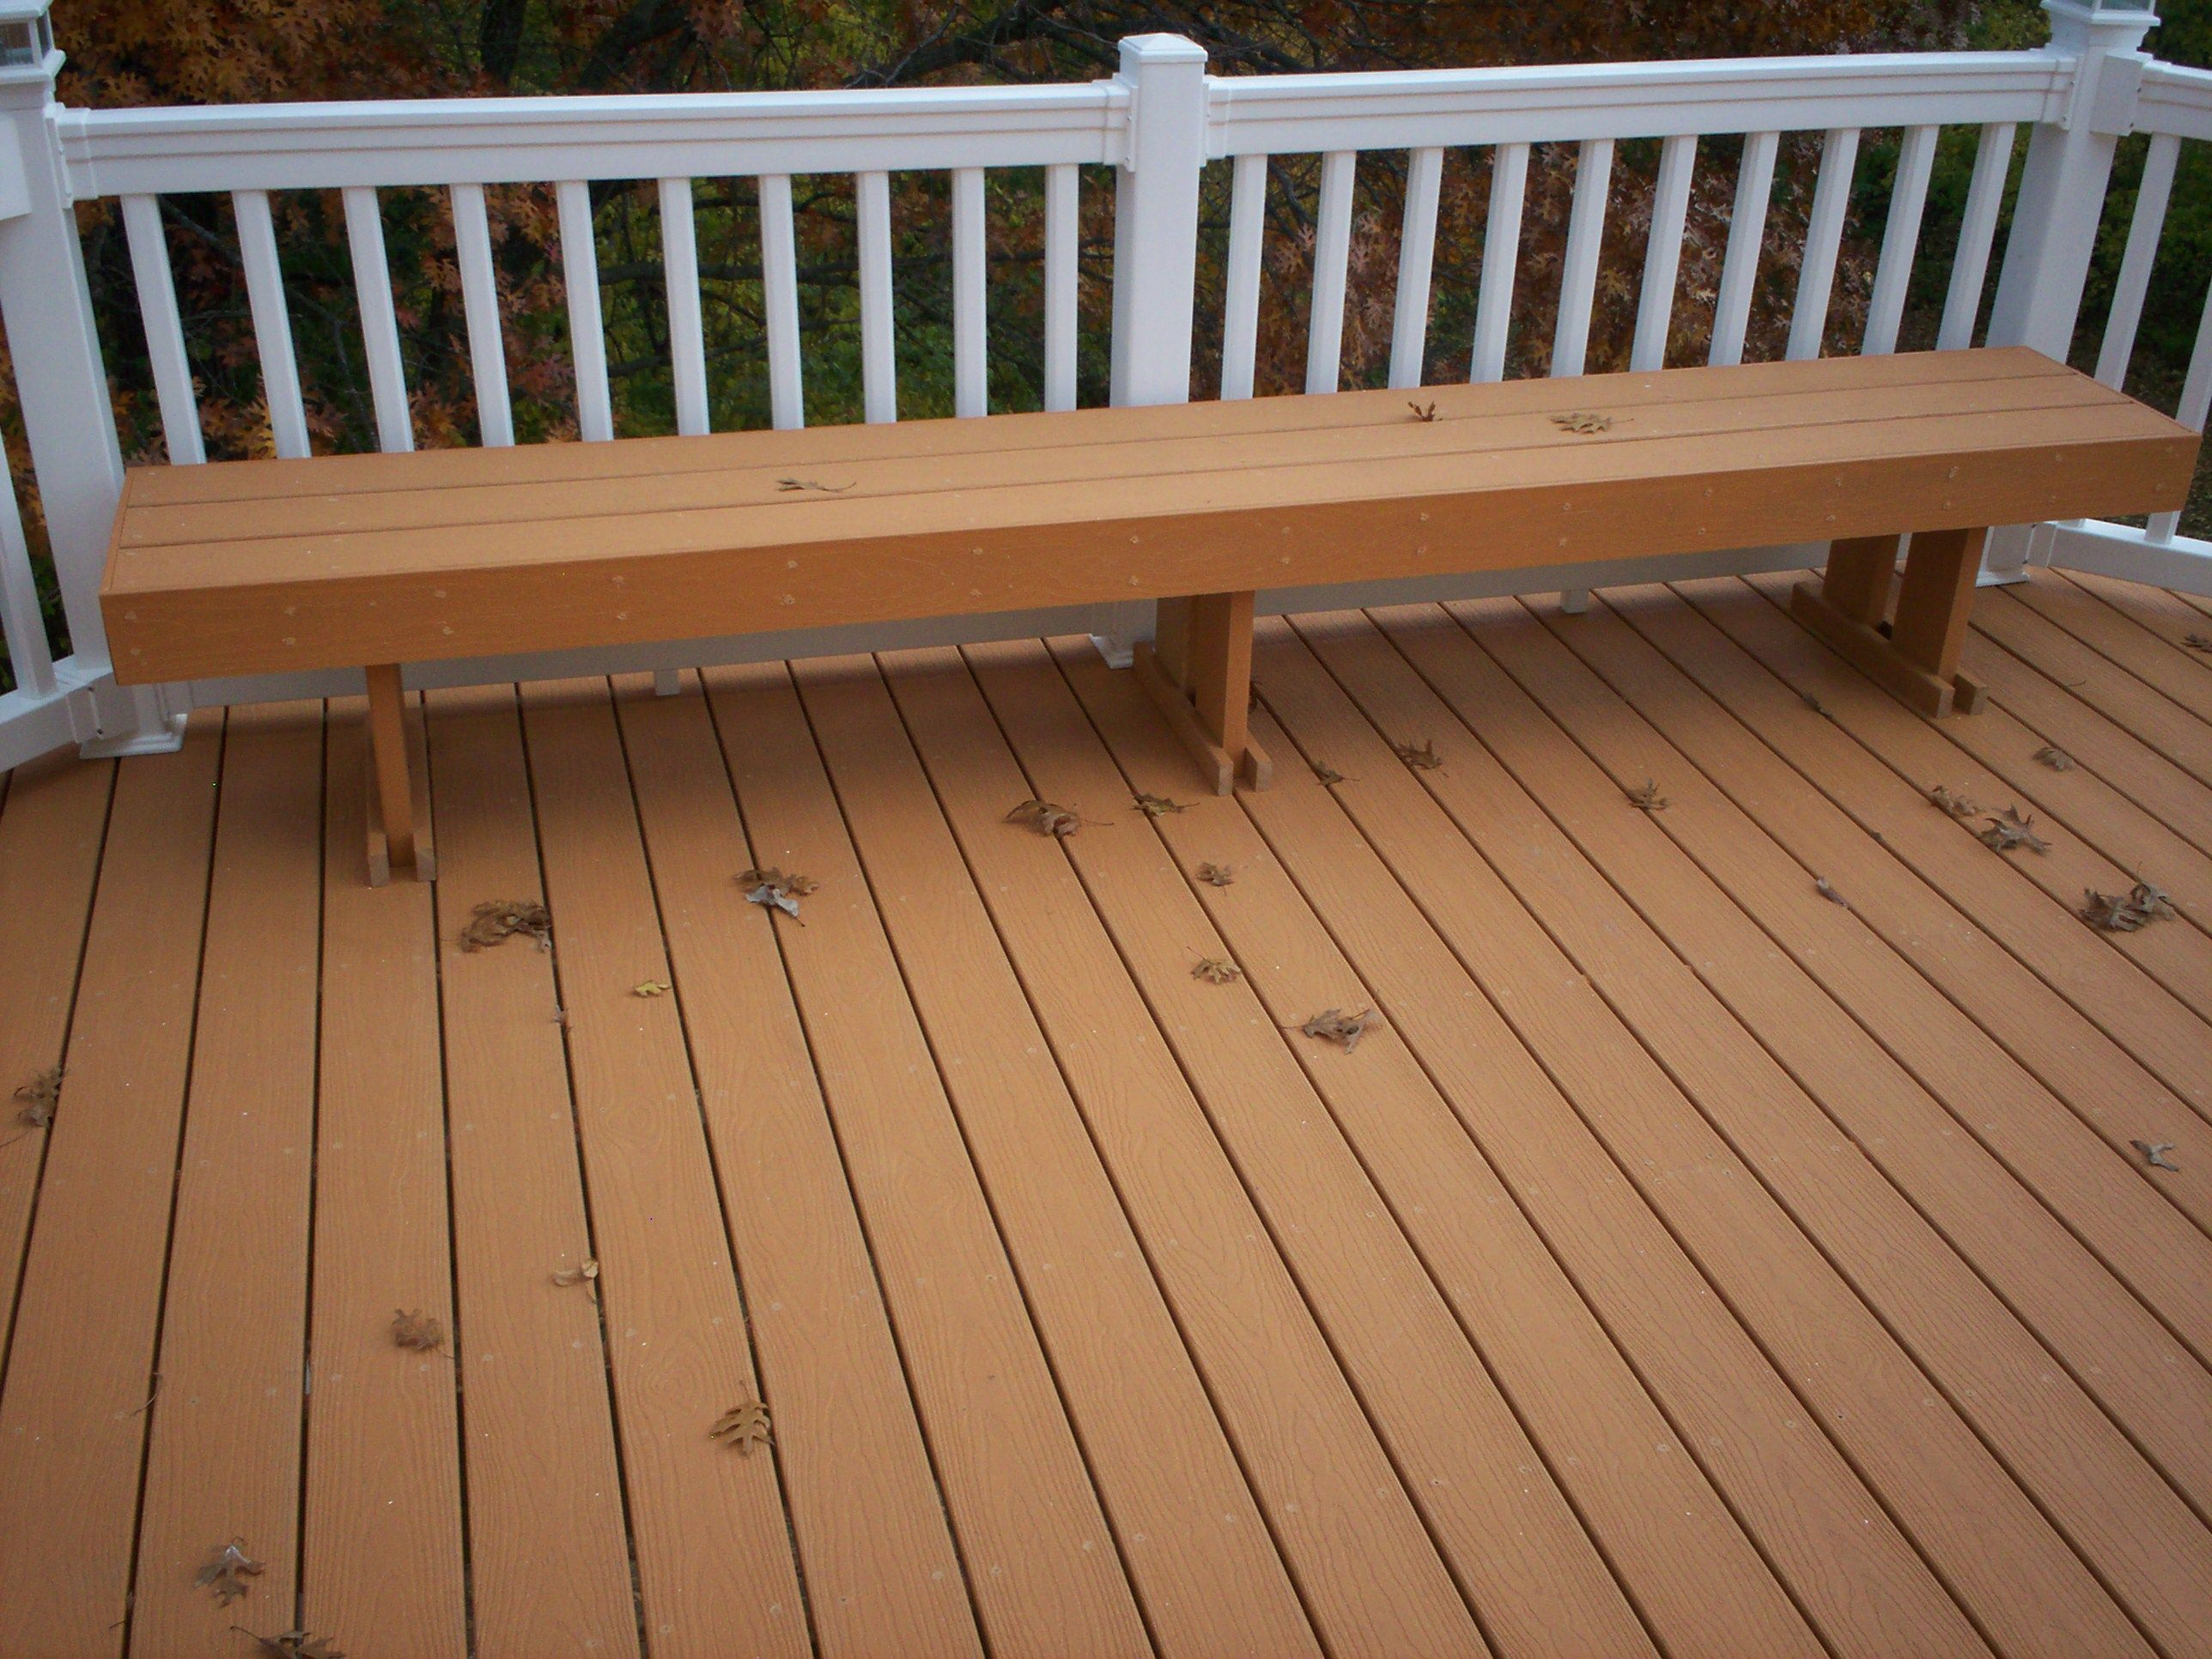 Composite Deck Bench Plans See 100s Of Deck Railing Ideas  Http://awoodrailing.